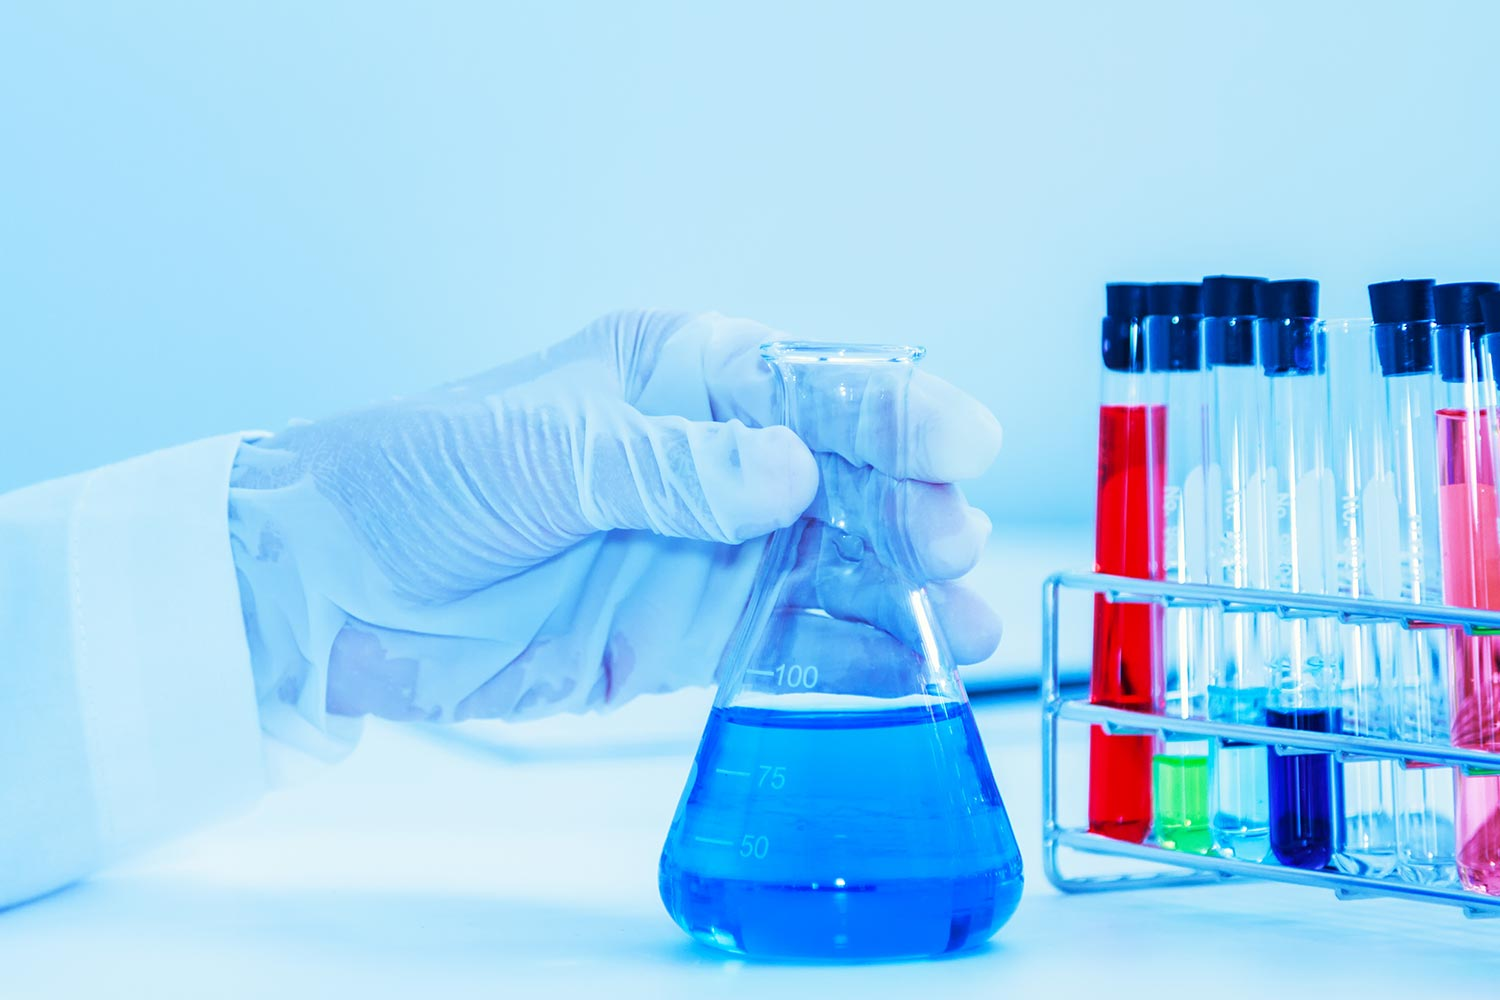 Fine & Specialty Chemicals